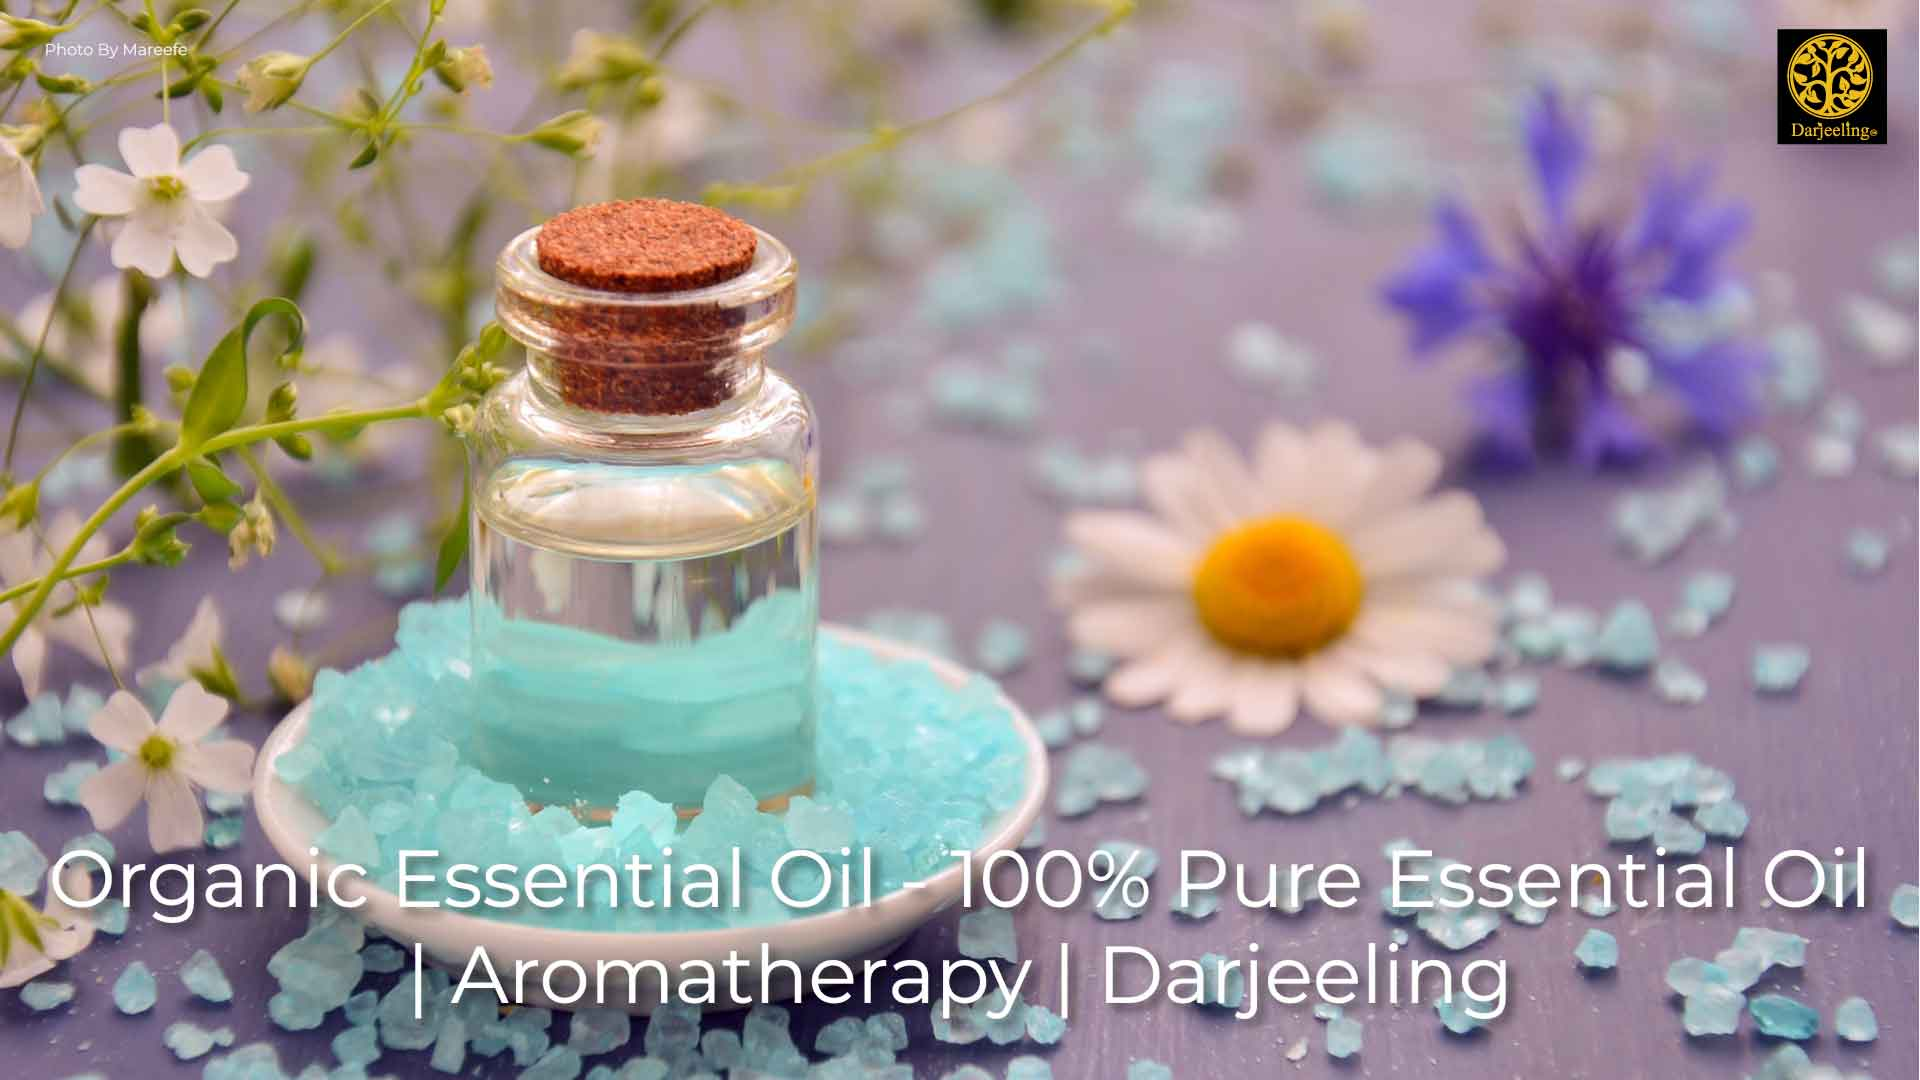 Organic Essential Oil - 100% Pure Essential Oil - Aromatherapy - Darjeeling